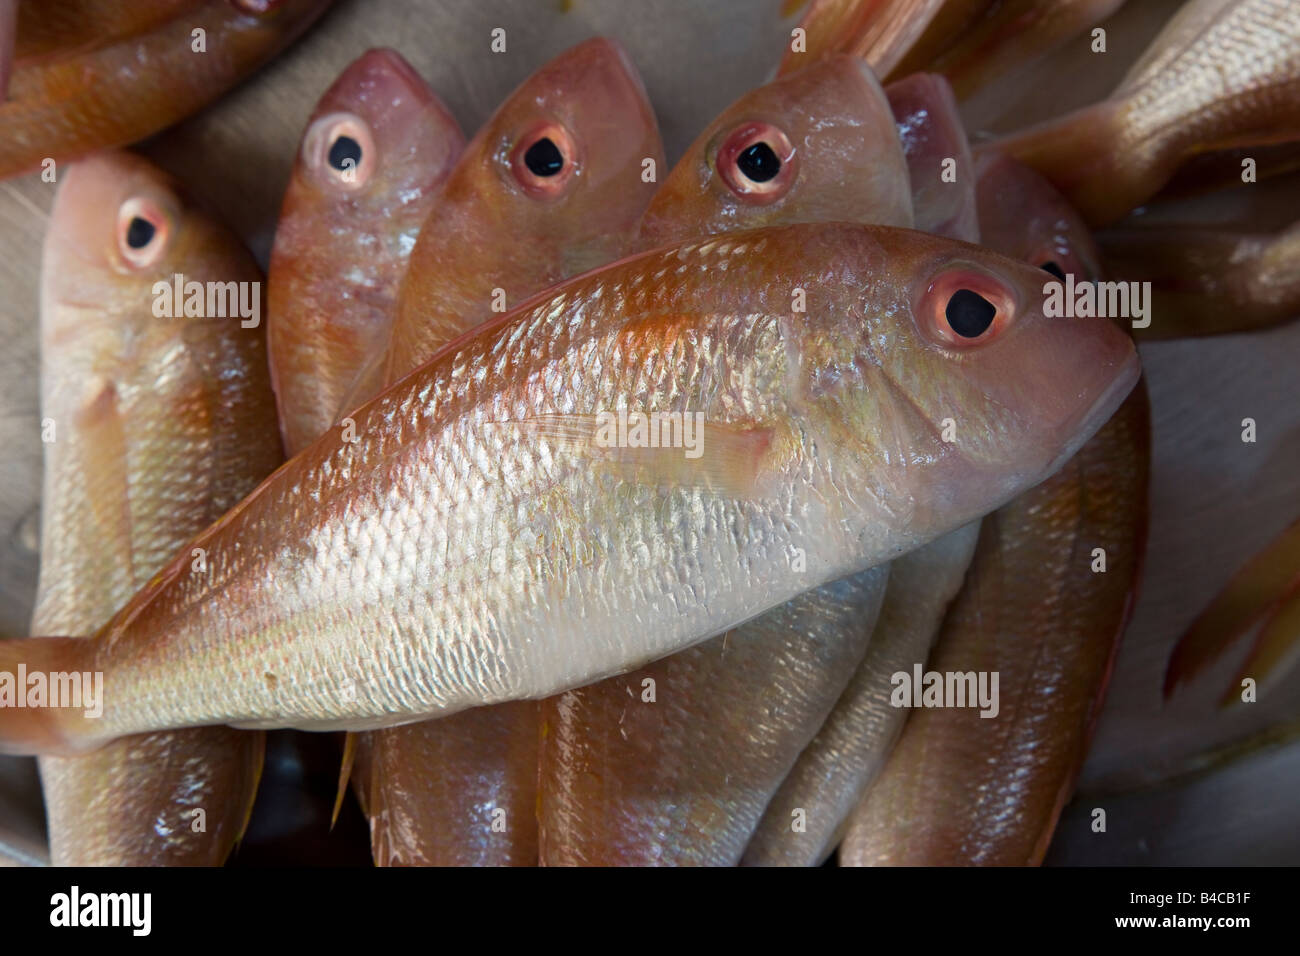 Asia, Malaysia, Kelantan State, Kota Bharu, fresh fish for sale in the towns central market - Stock Image